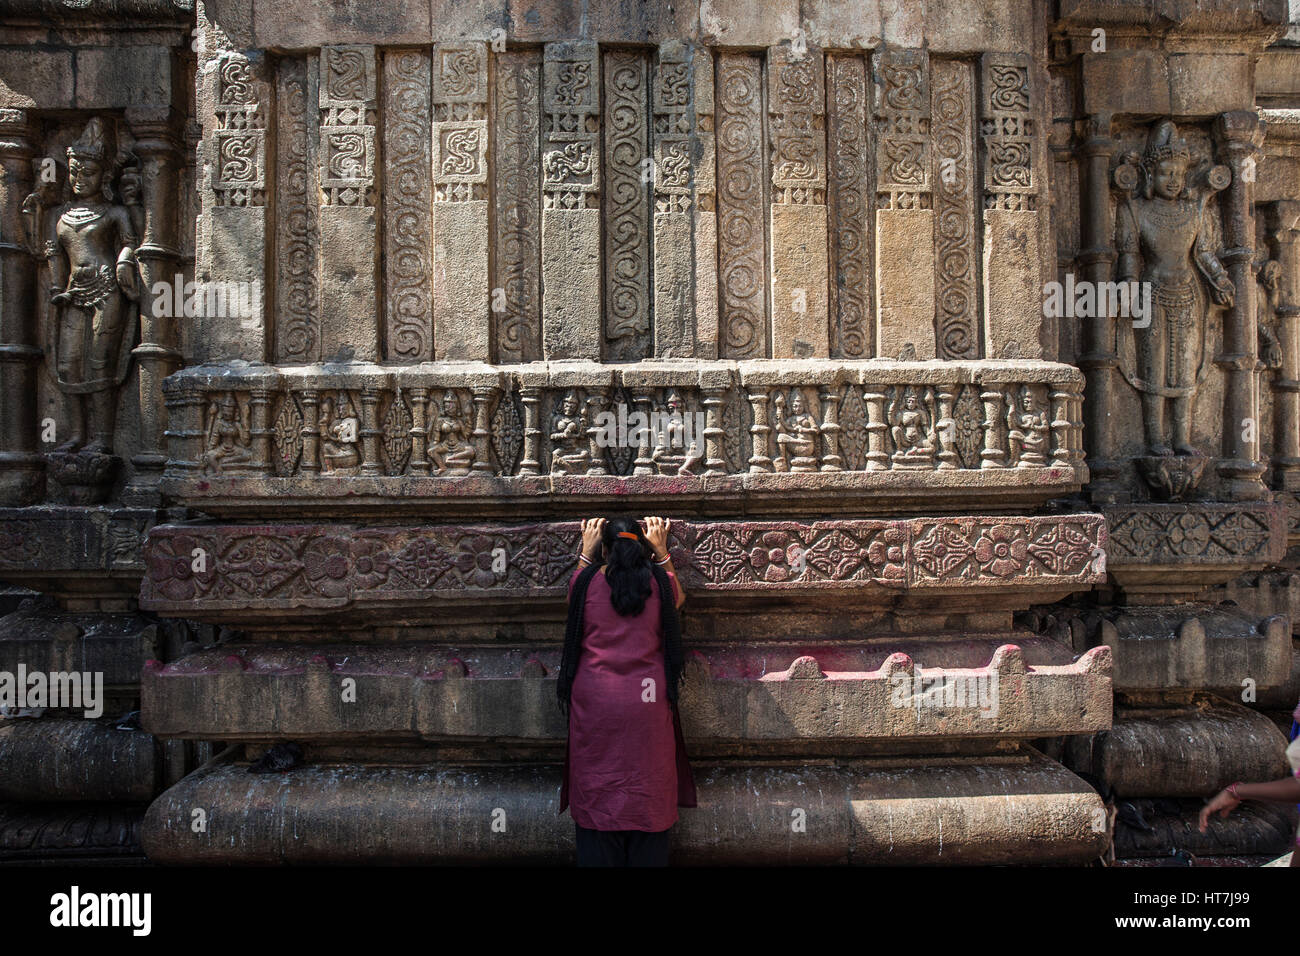 Devotee Bowing To The Kamakhya Temple In Assam, India - Stock Image